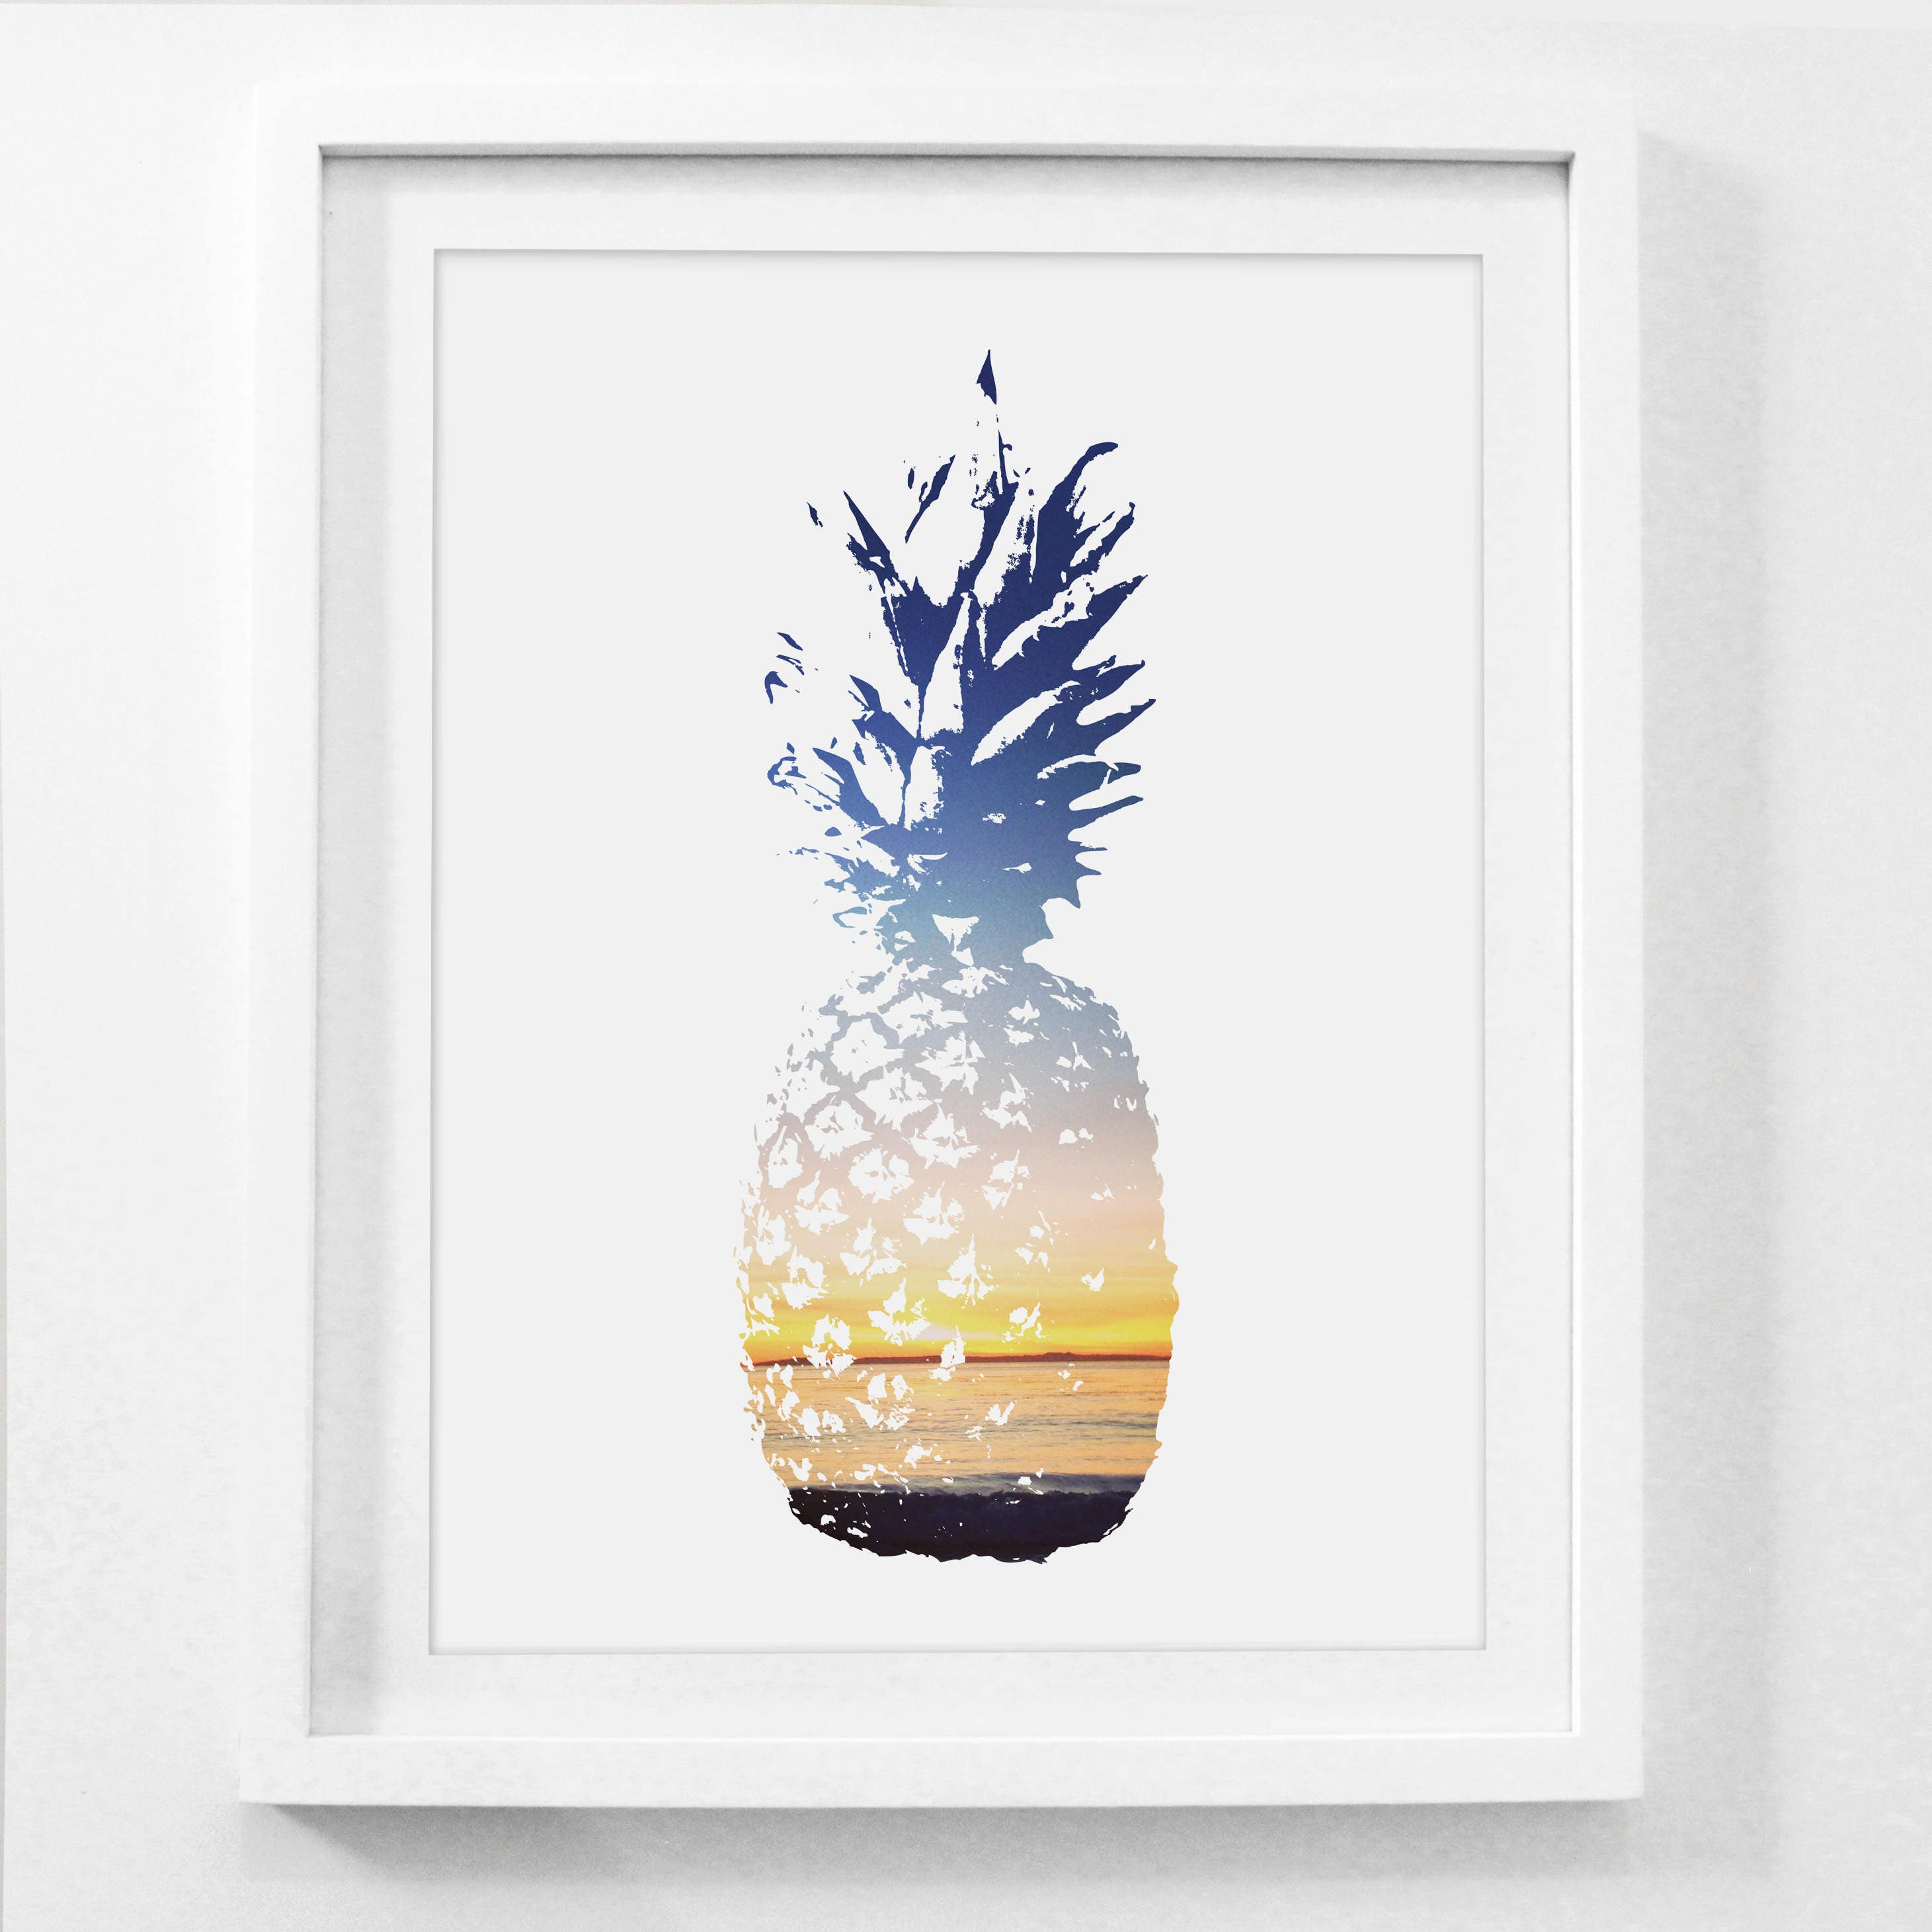 8x10 and 5x7 collage frame - Pineapple Print Pineapple Art 8x10 Print 11x14 Art Pineapple Art Print Pineapple Decor Wall Print Framed Art 5x7 Print 5x7 Art 4x6